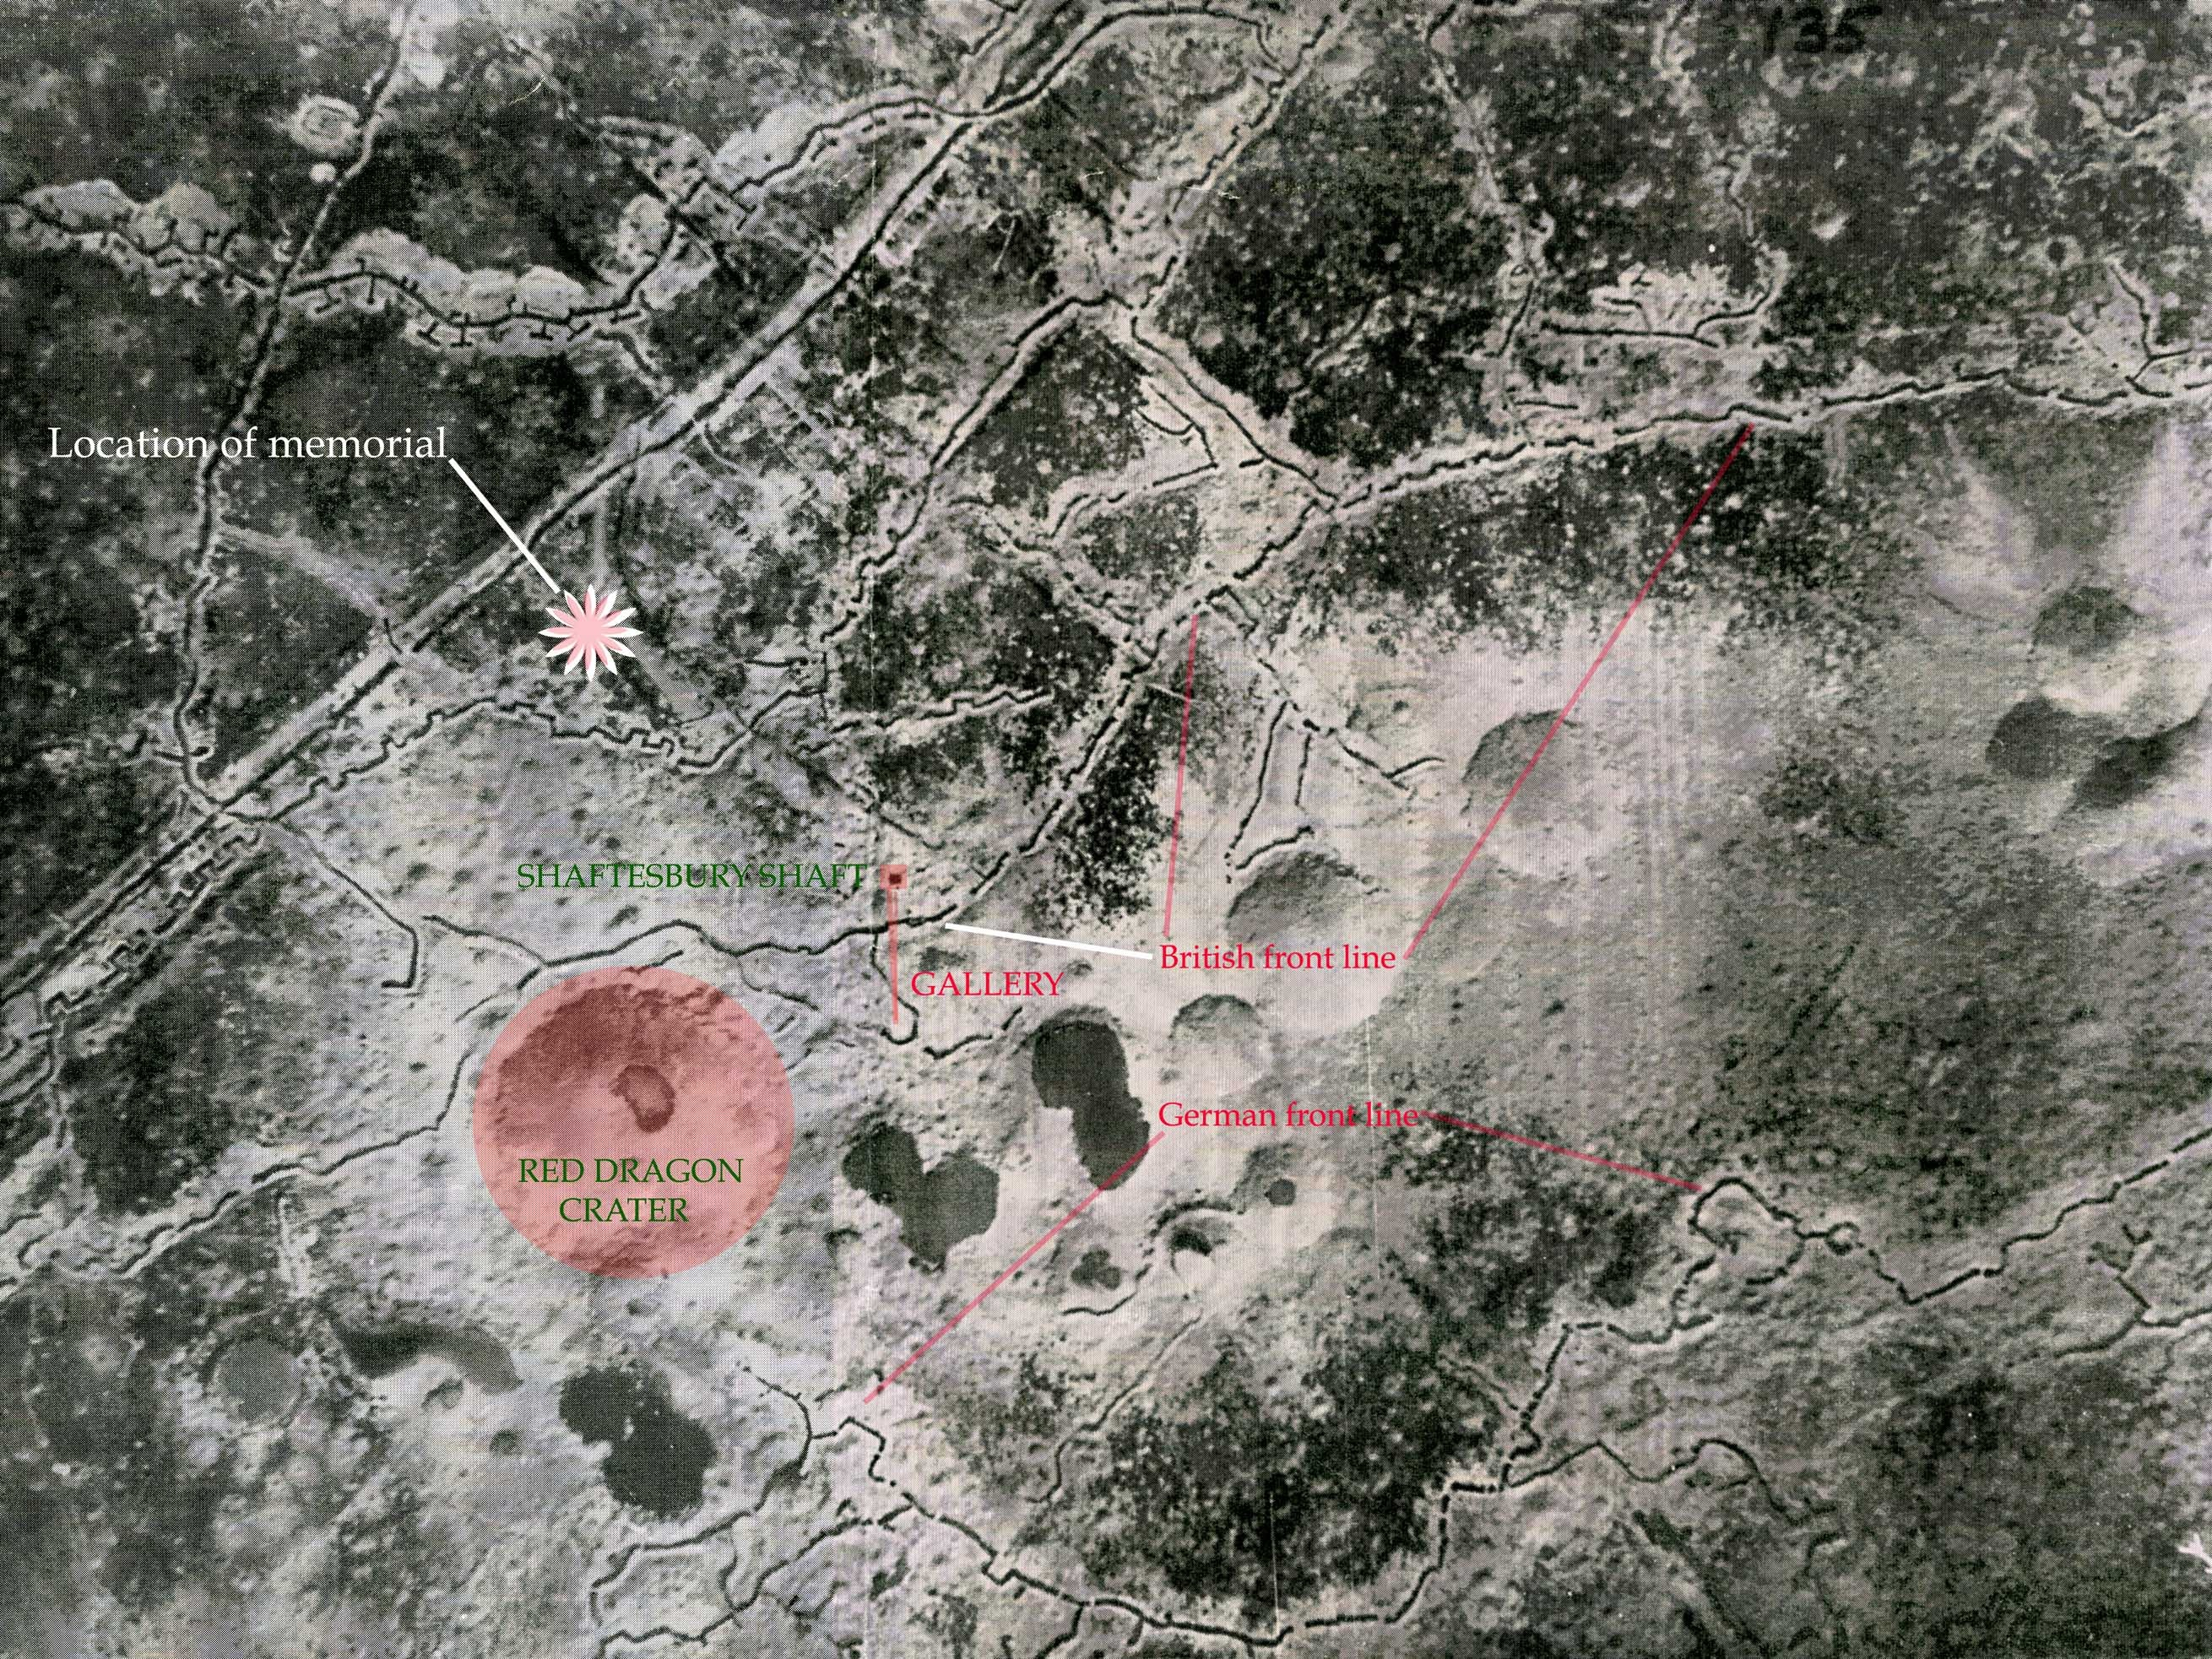 Contemporary aerial photograph showing locations of shaft, gallery and craters